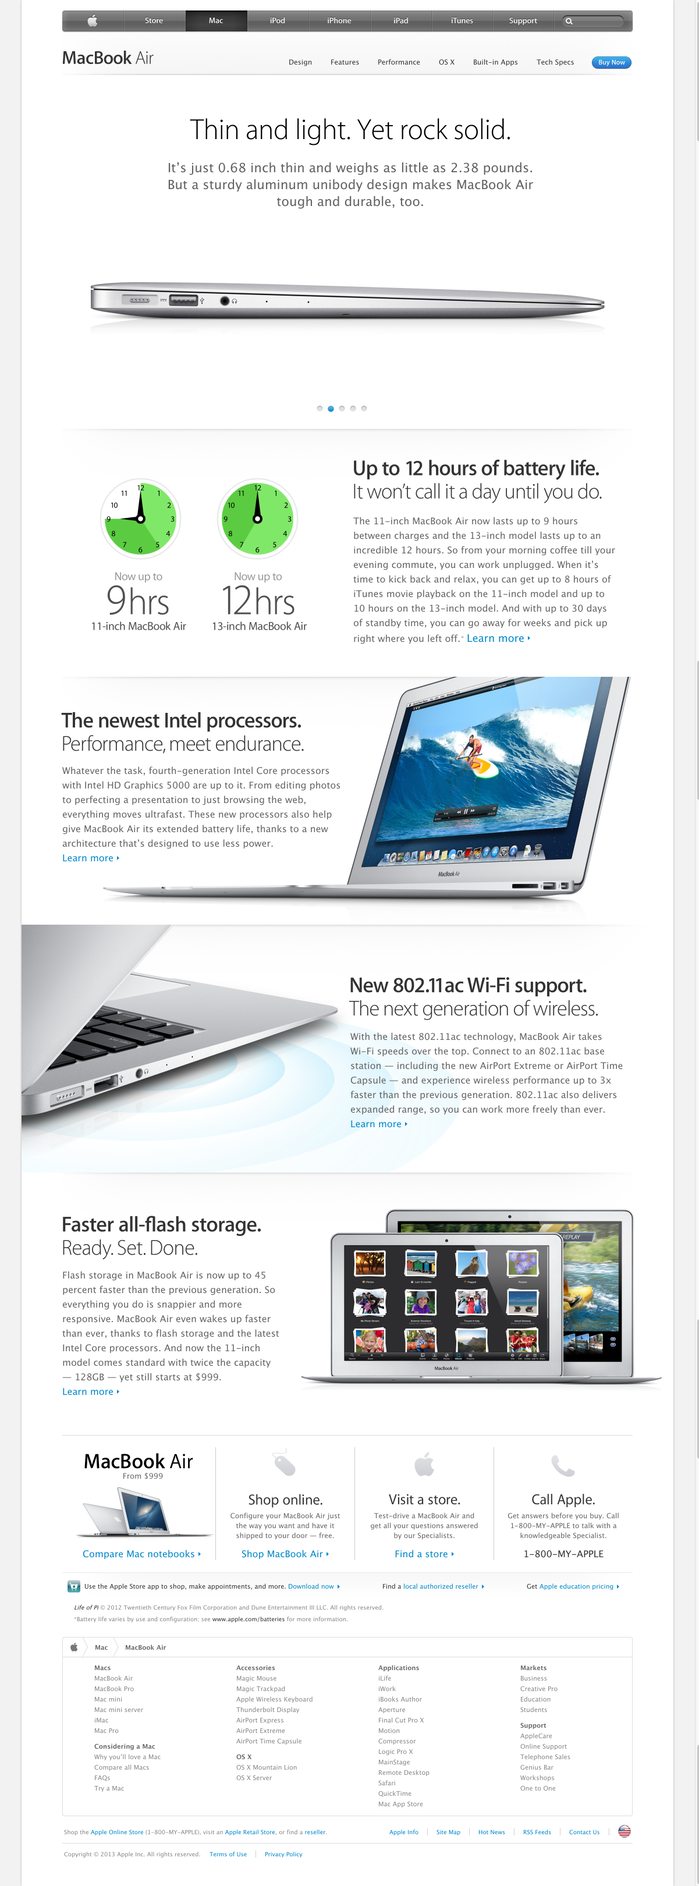 "Apple sometimes uses an ultra thin weight of Myriad that is lighter than anything commercially available. I suppose they had one custom made to emphasize the ""weightlessness"" of the MacBook Air. This style of Myriad is also used elsewhere on Apple.com."